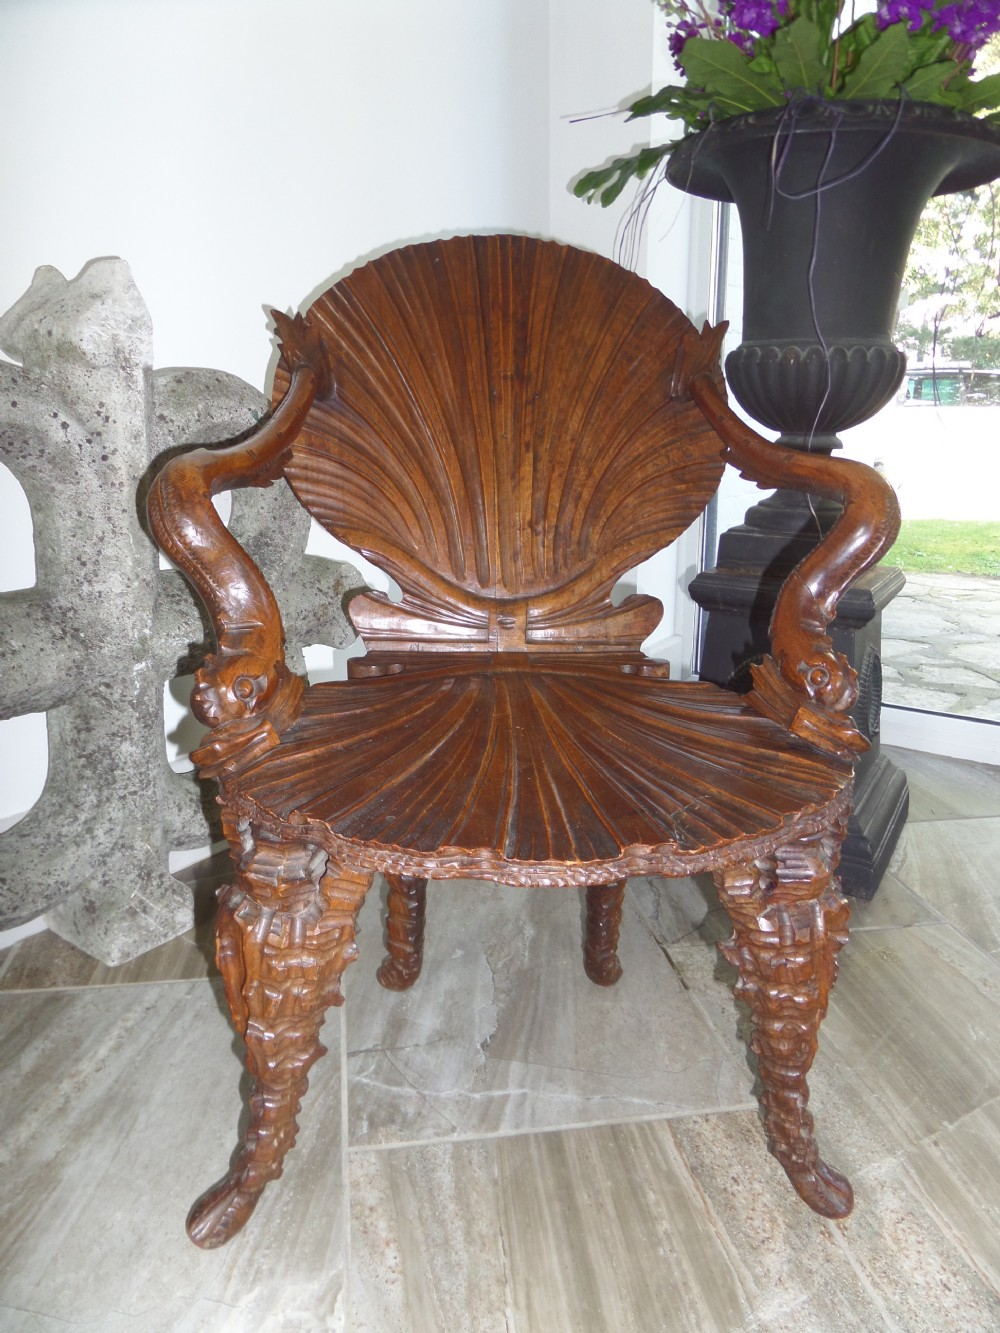 Rare 19th Century Italian Carved Walnut Grotto Venetian Baroque Chair